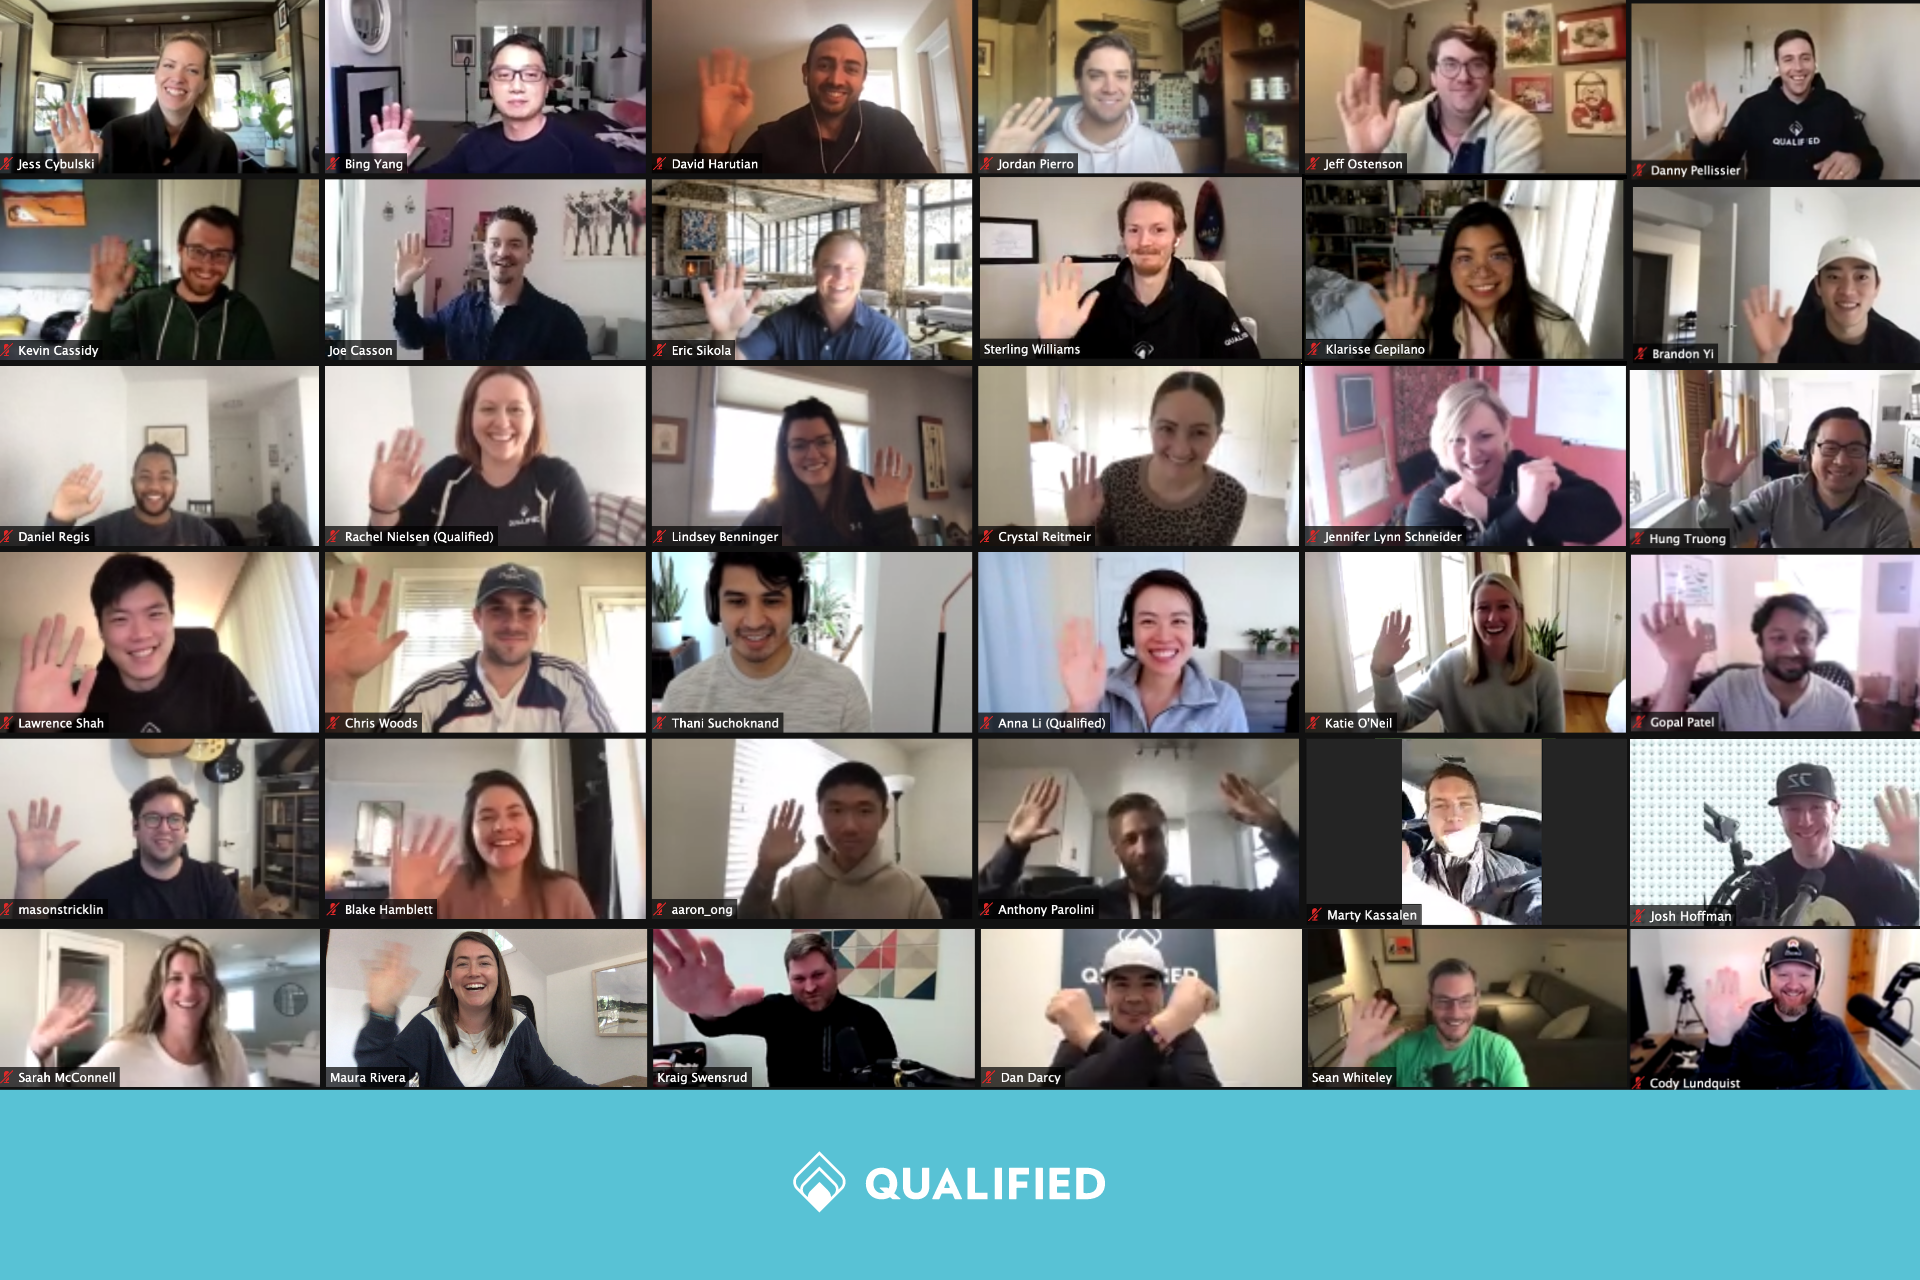 Qualified is chosen as the #1 best place to work by San Francisco Business Times